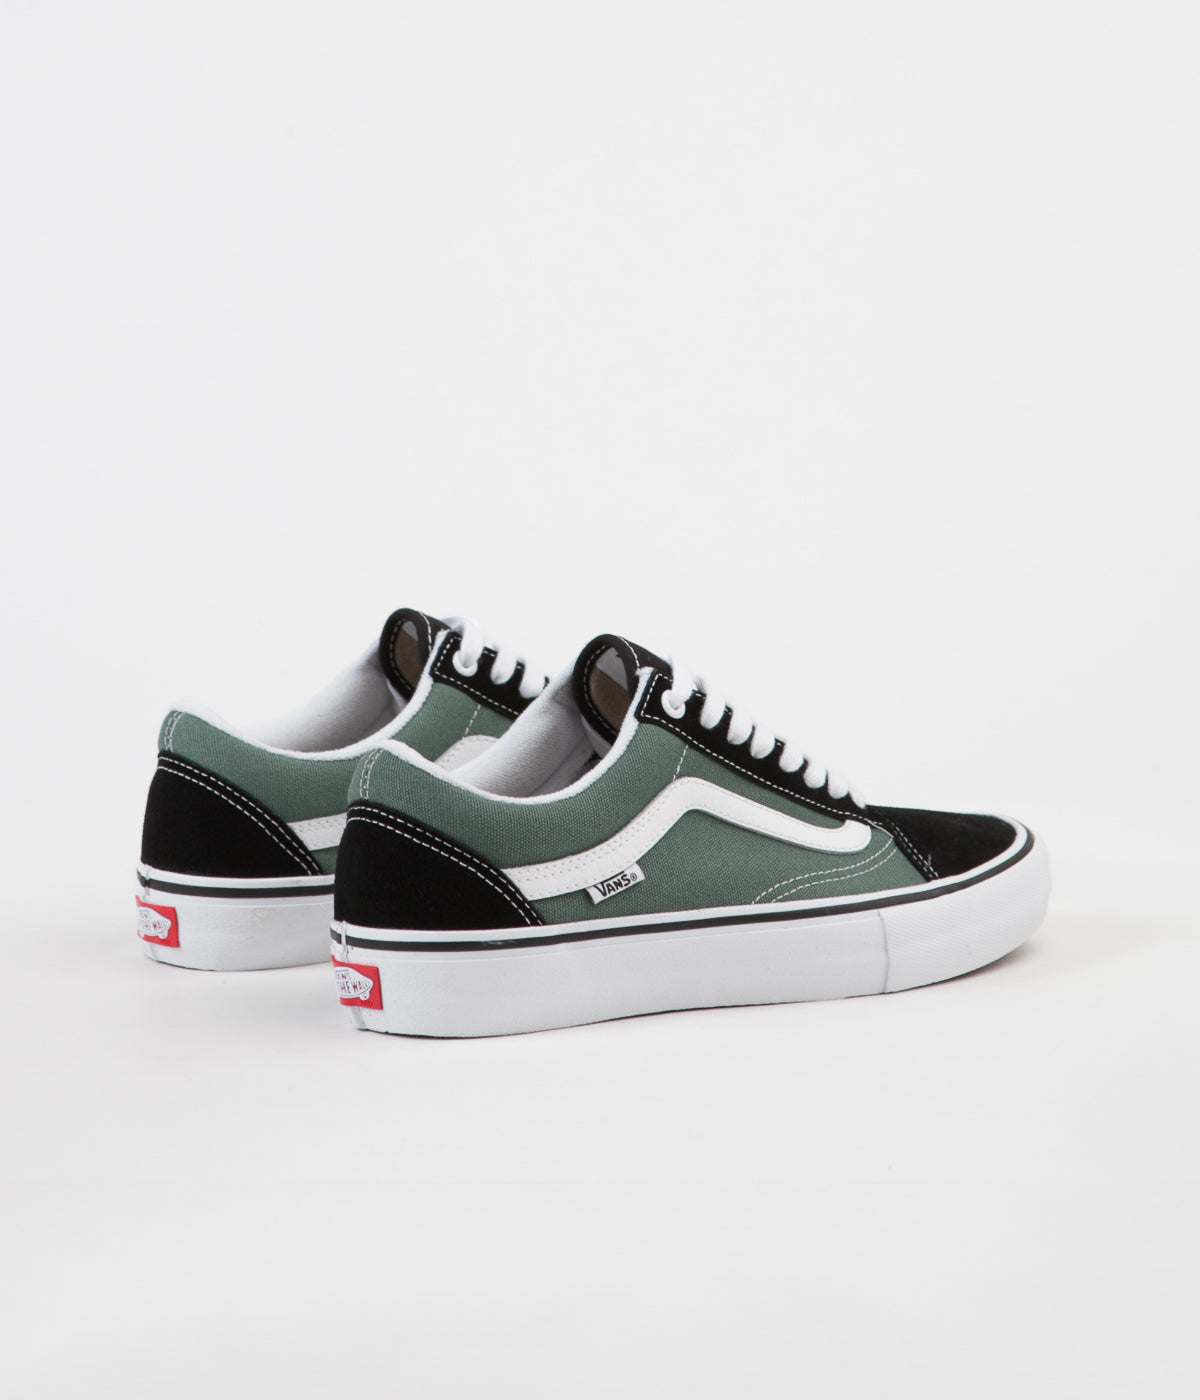 75c0b2eb0b67e3 ... Vans Old Skool Pro Shoes - Black   Duck Green ...